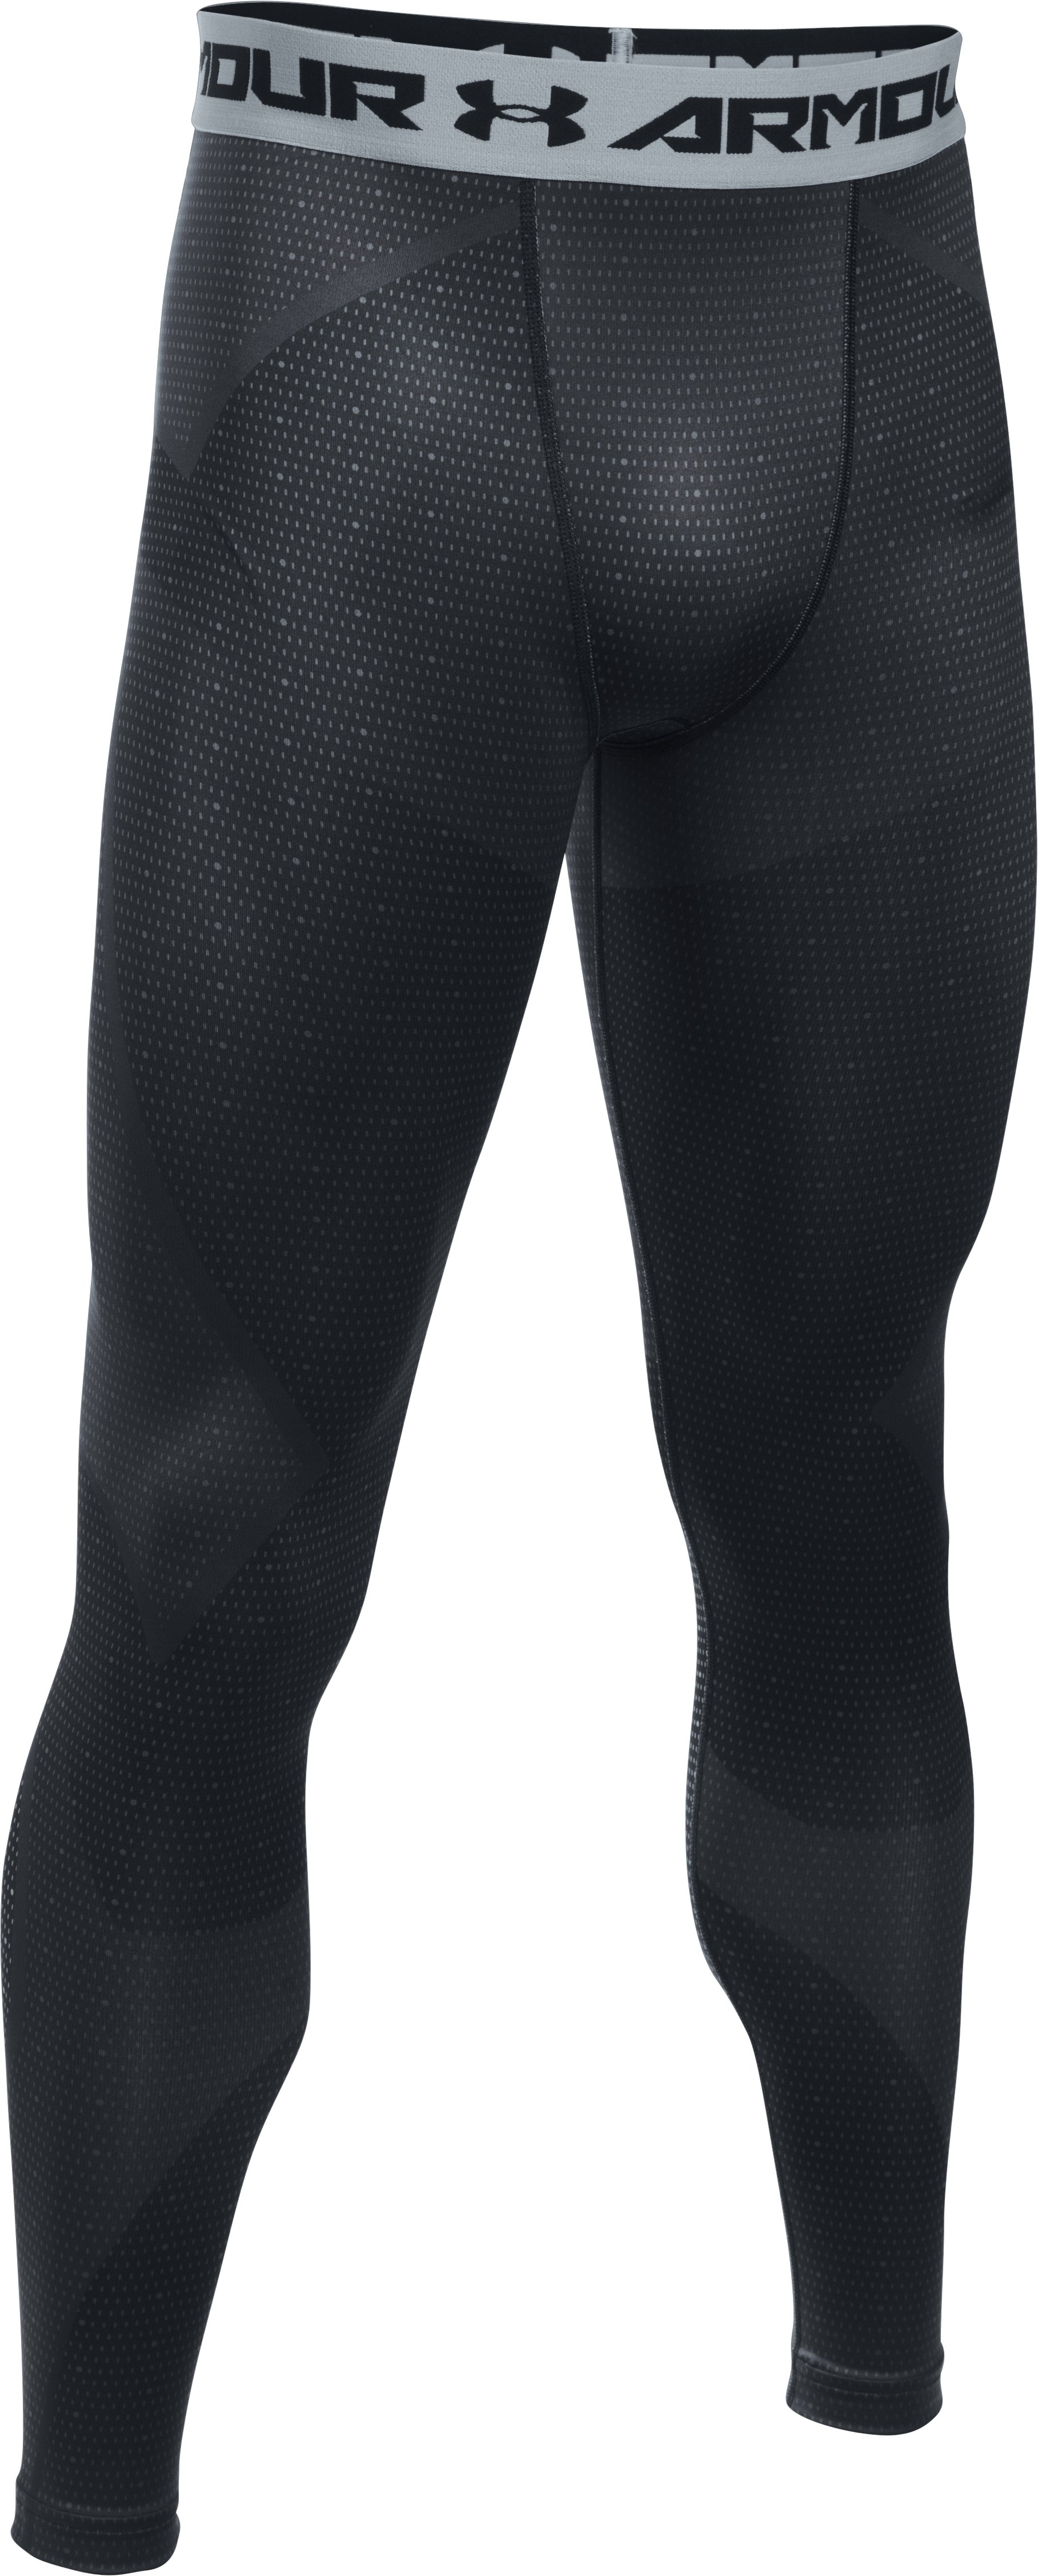 Men's ColdGear® Armour Sublimated Leggings, Black , undefined